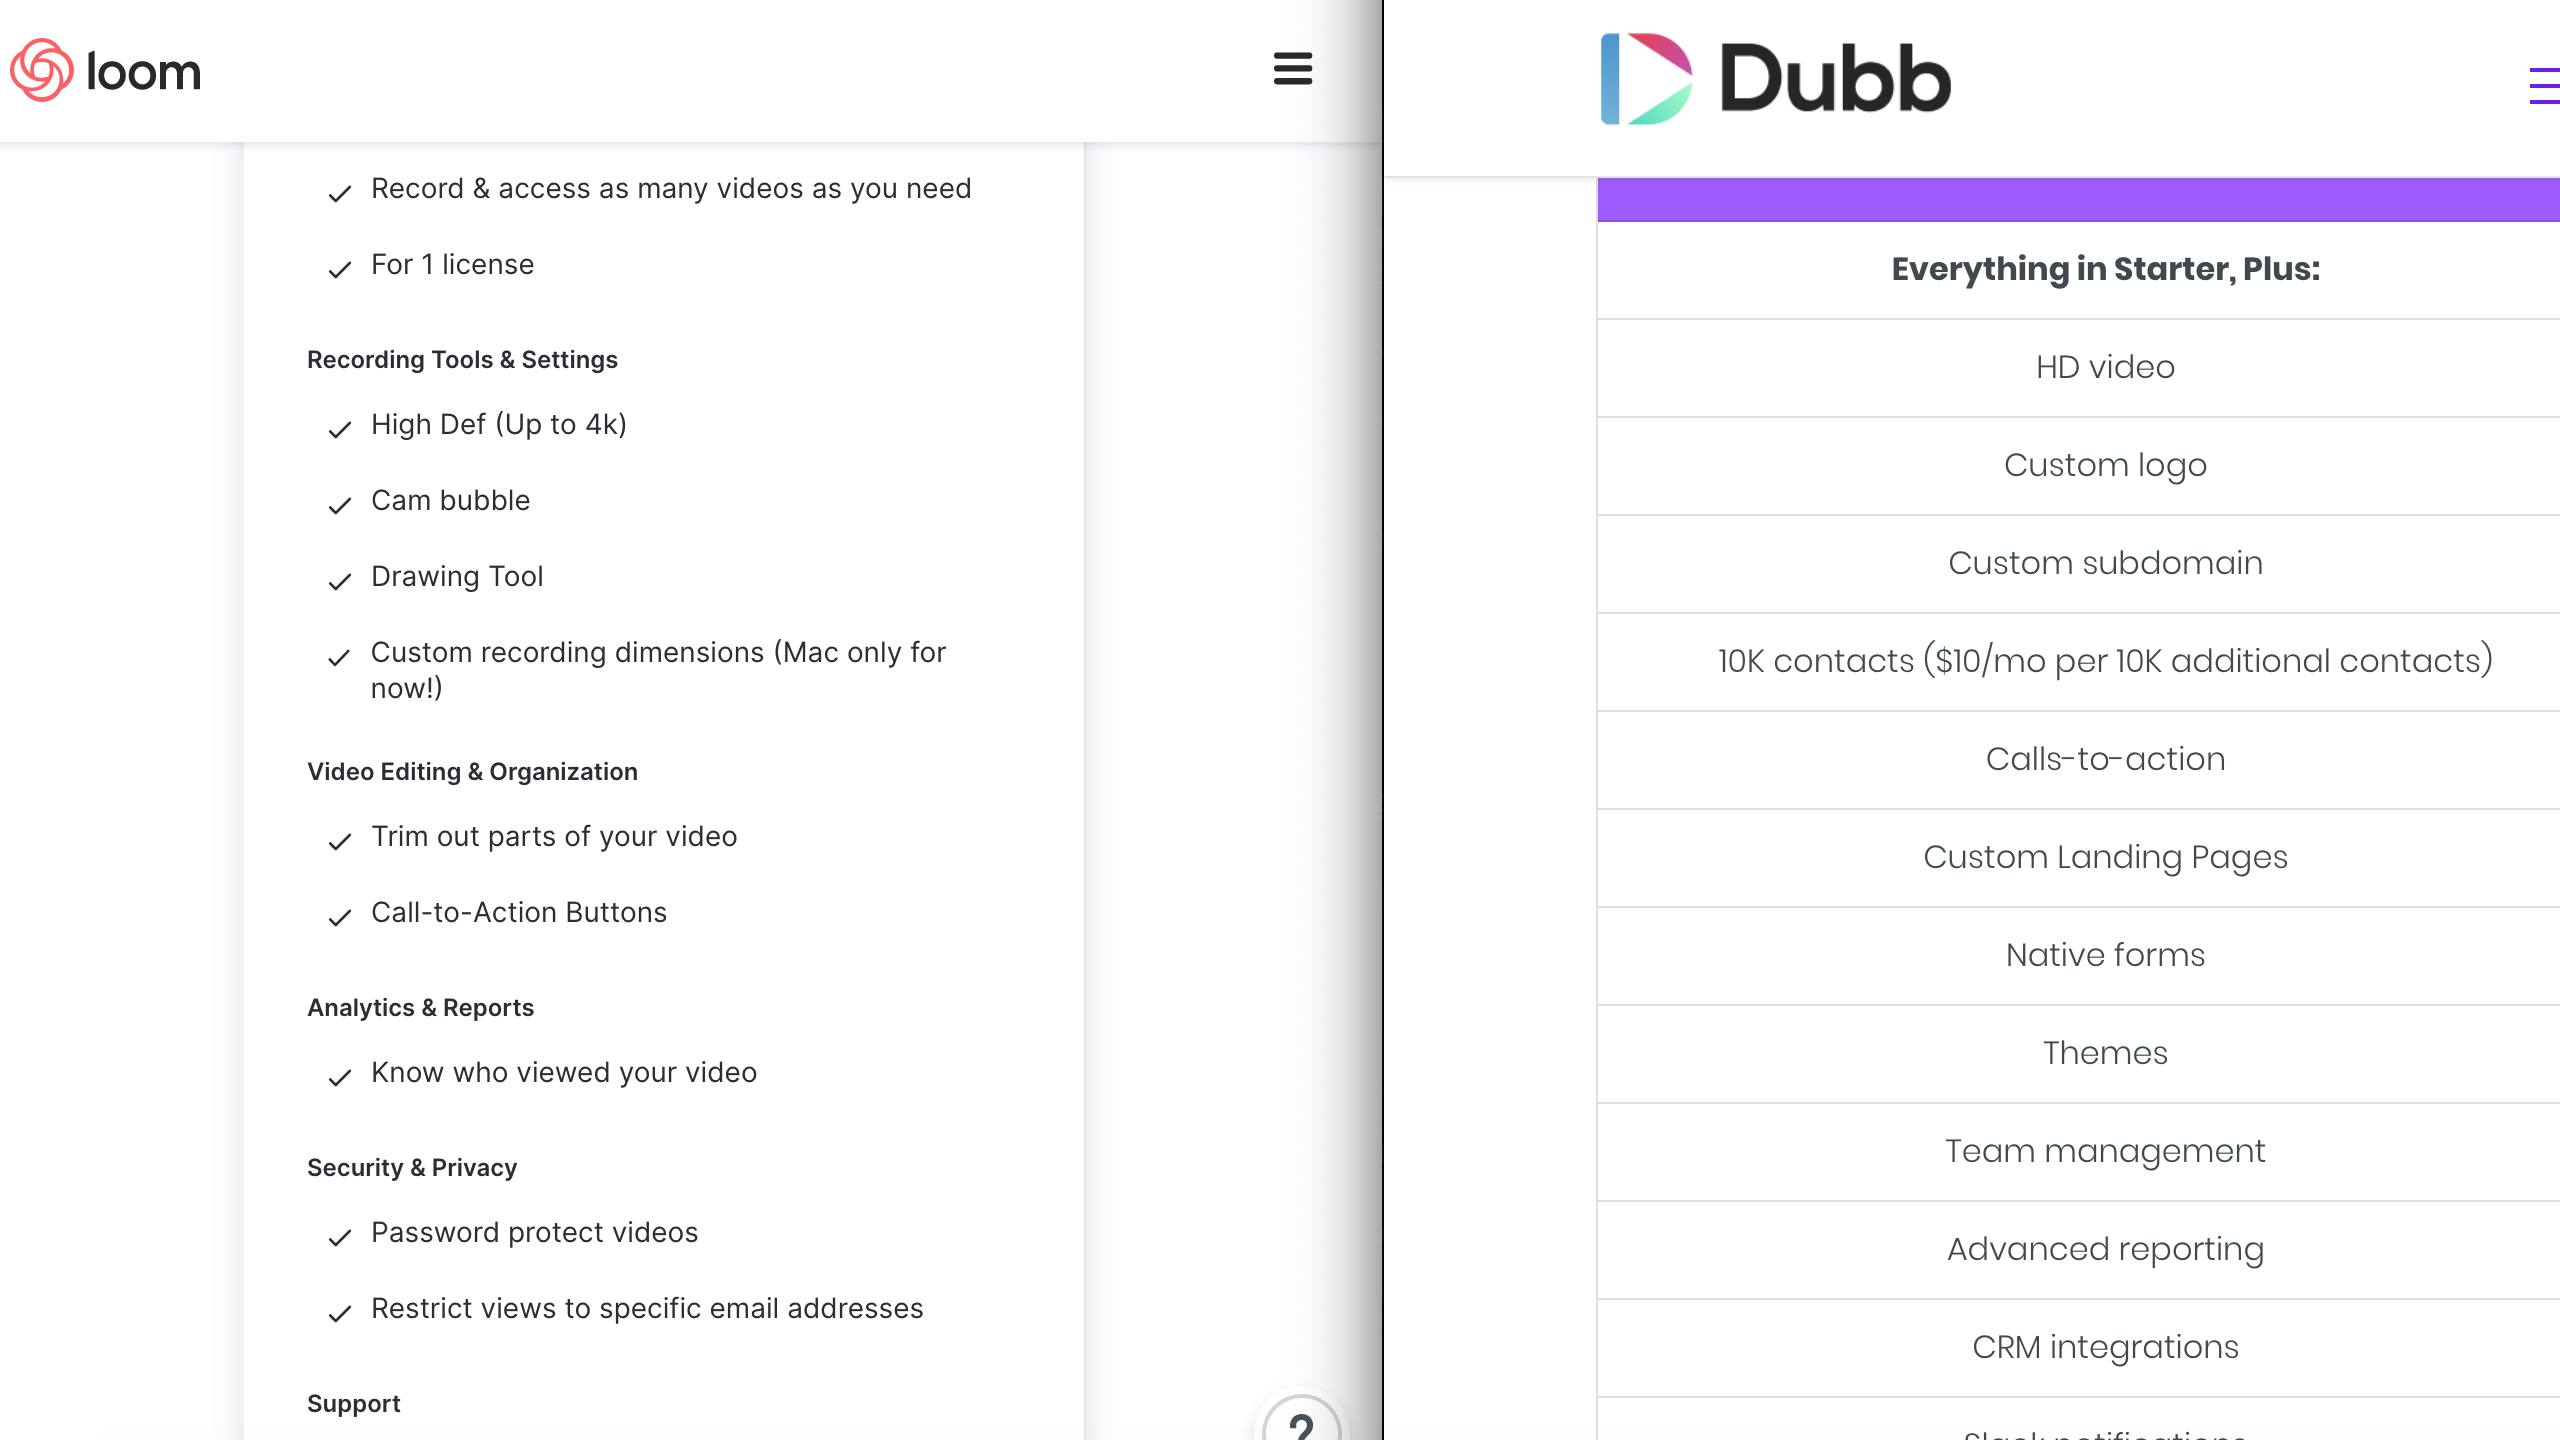 Loom features compared to Dubb features